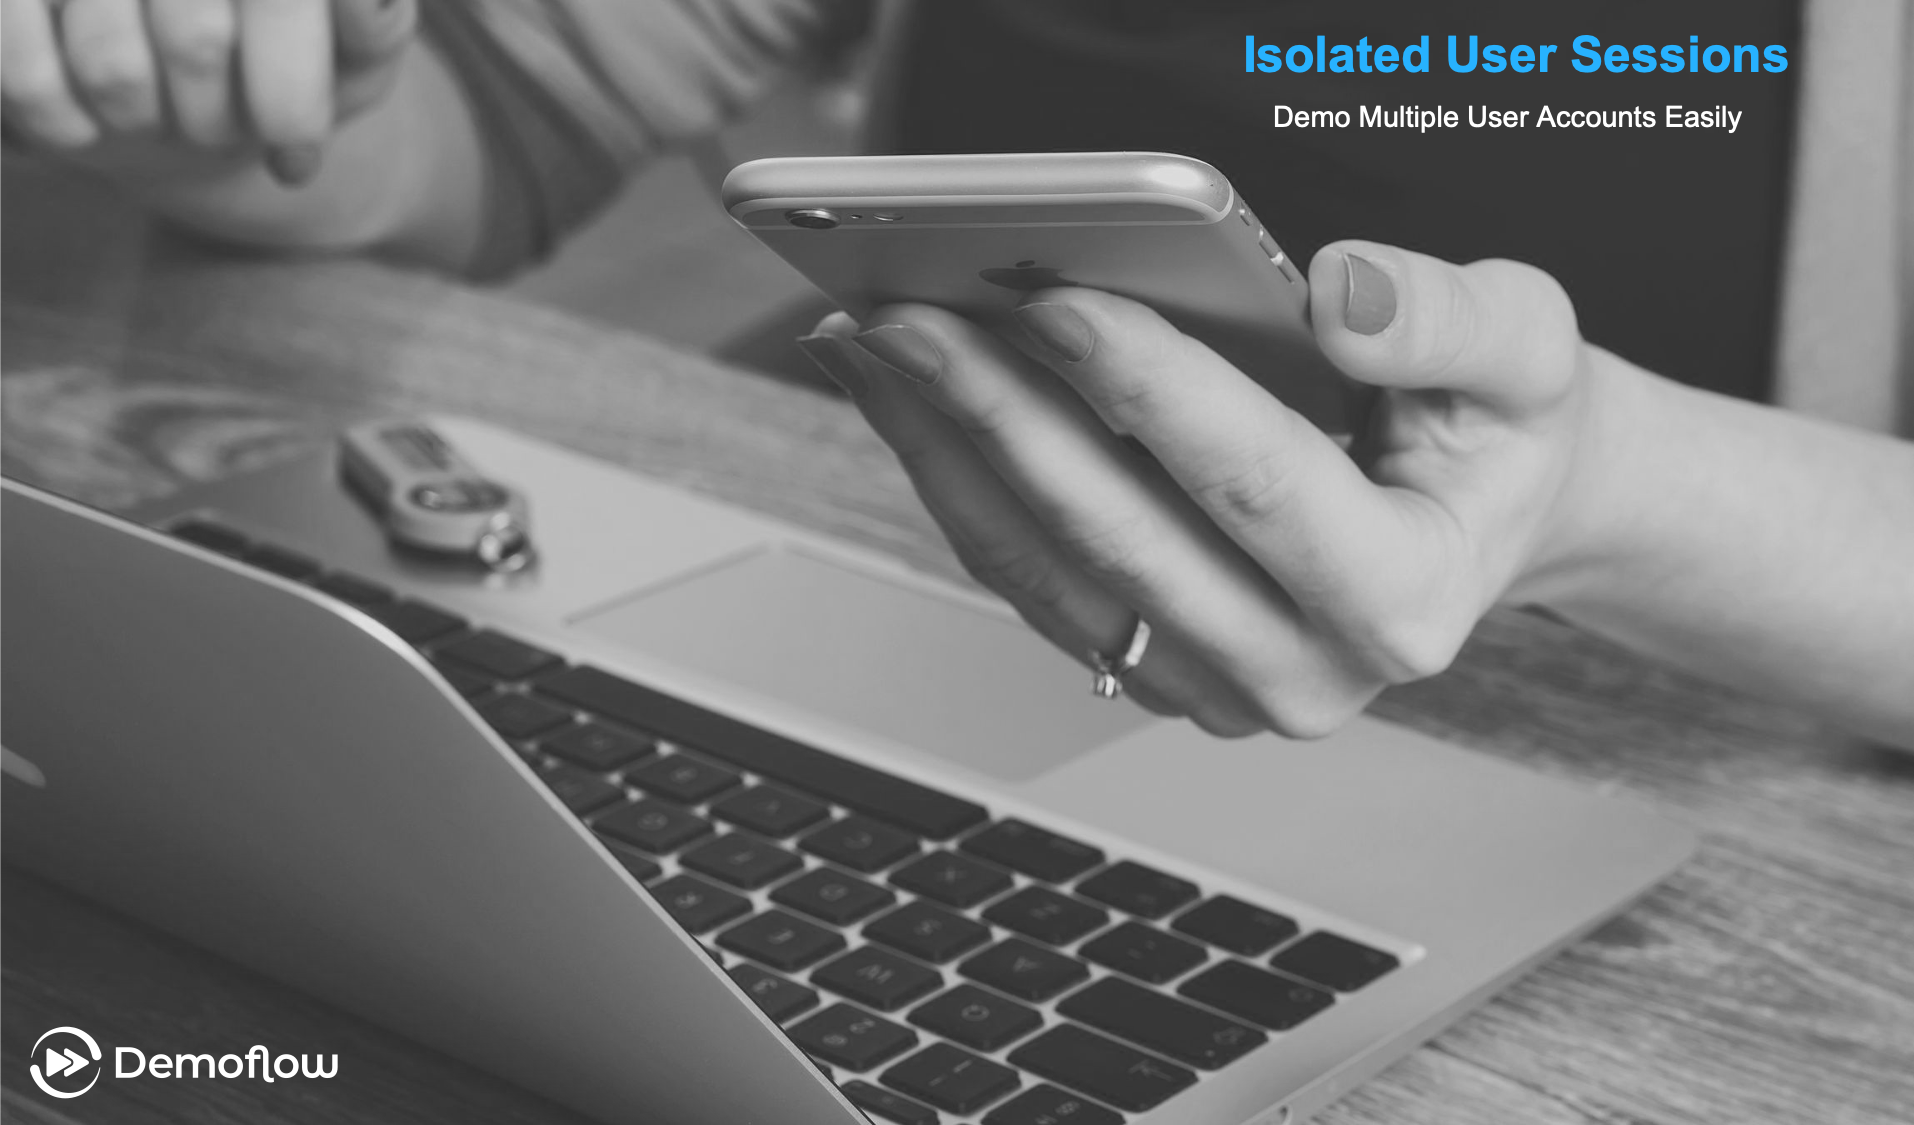 Isolated User Sessions: Demo multiple user accounts in one seamless presentation